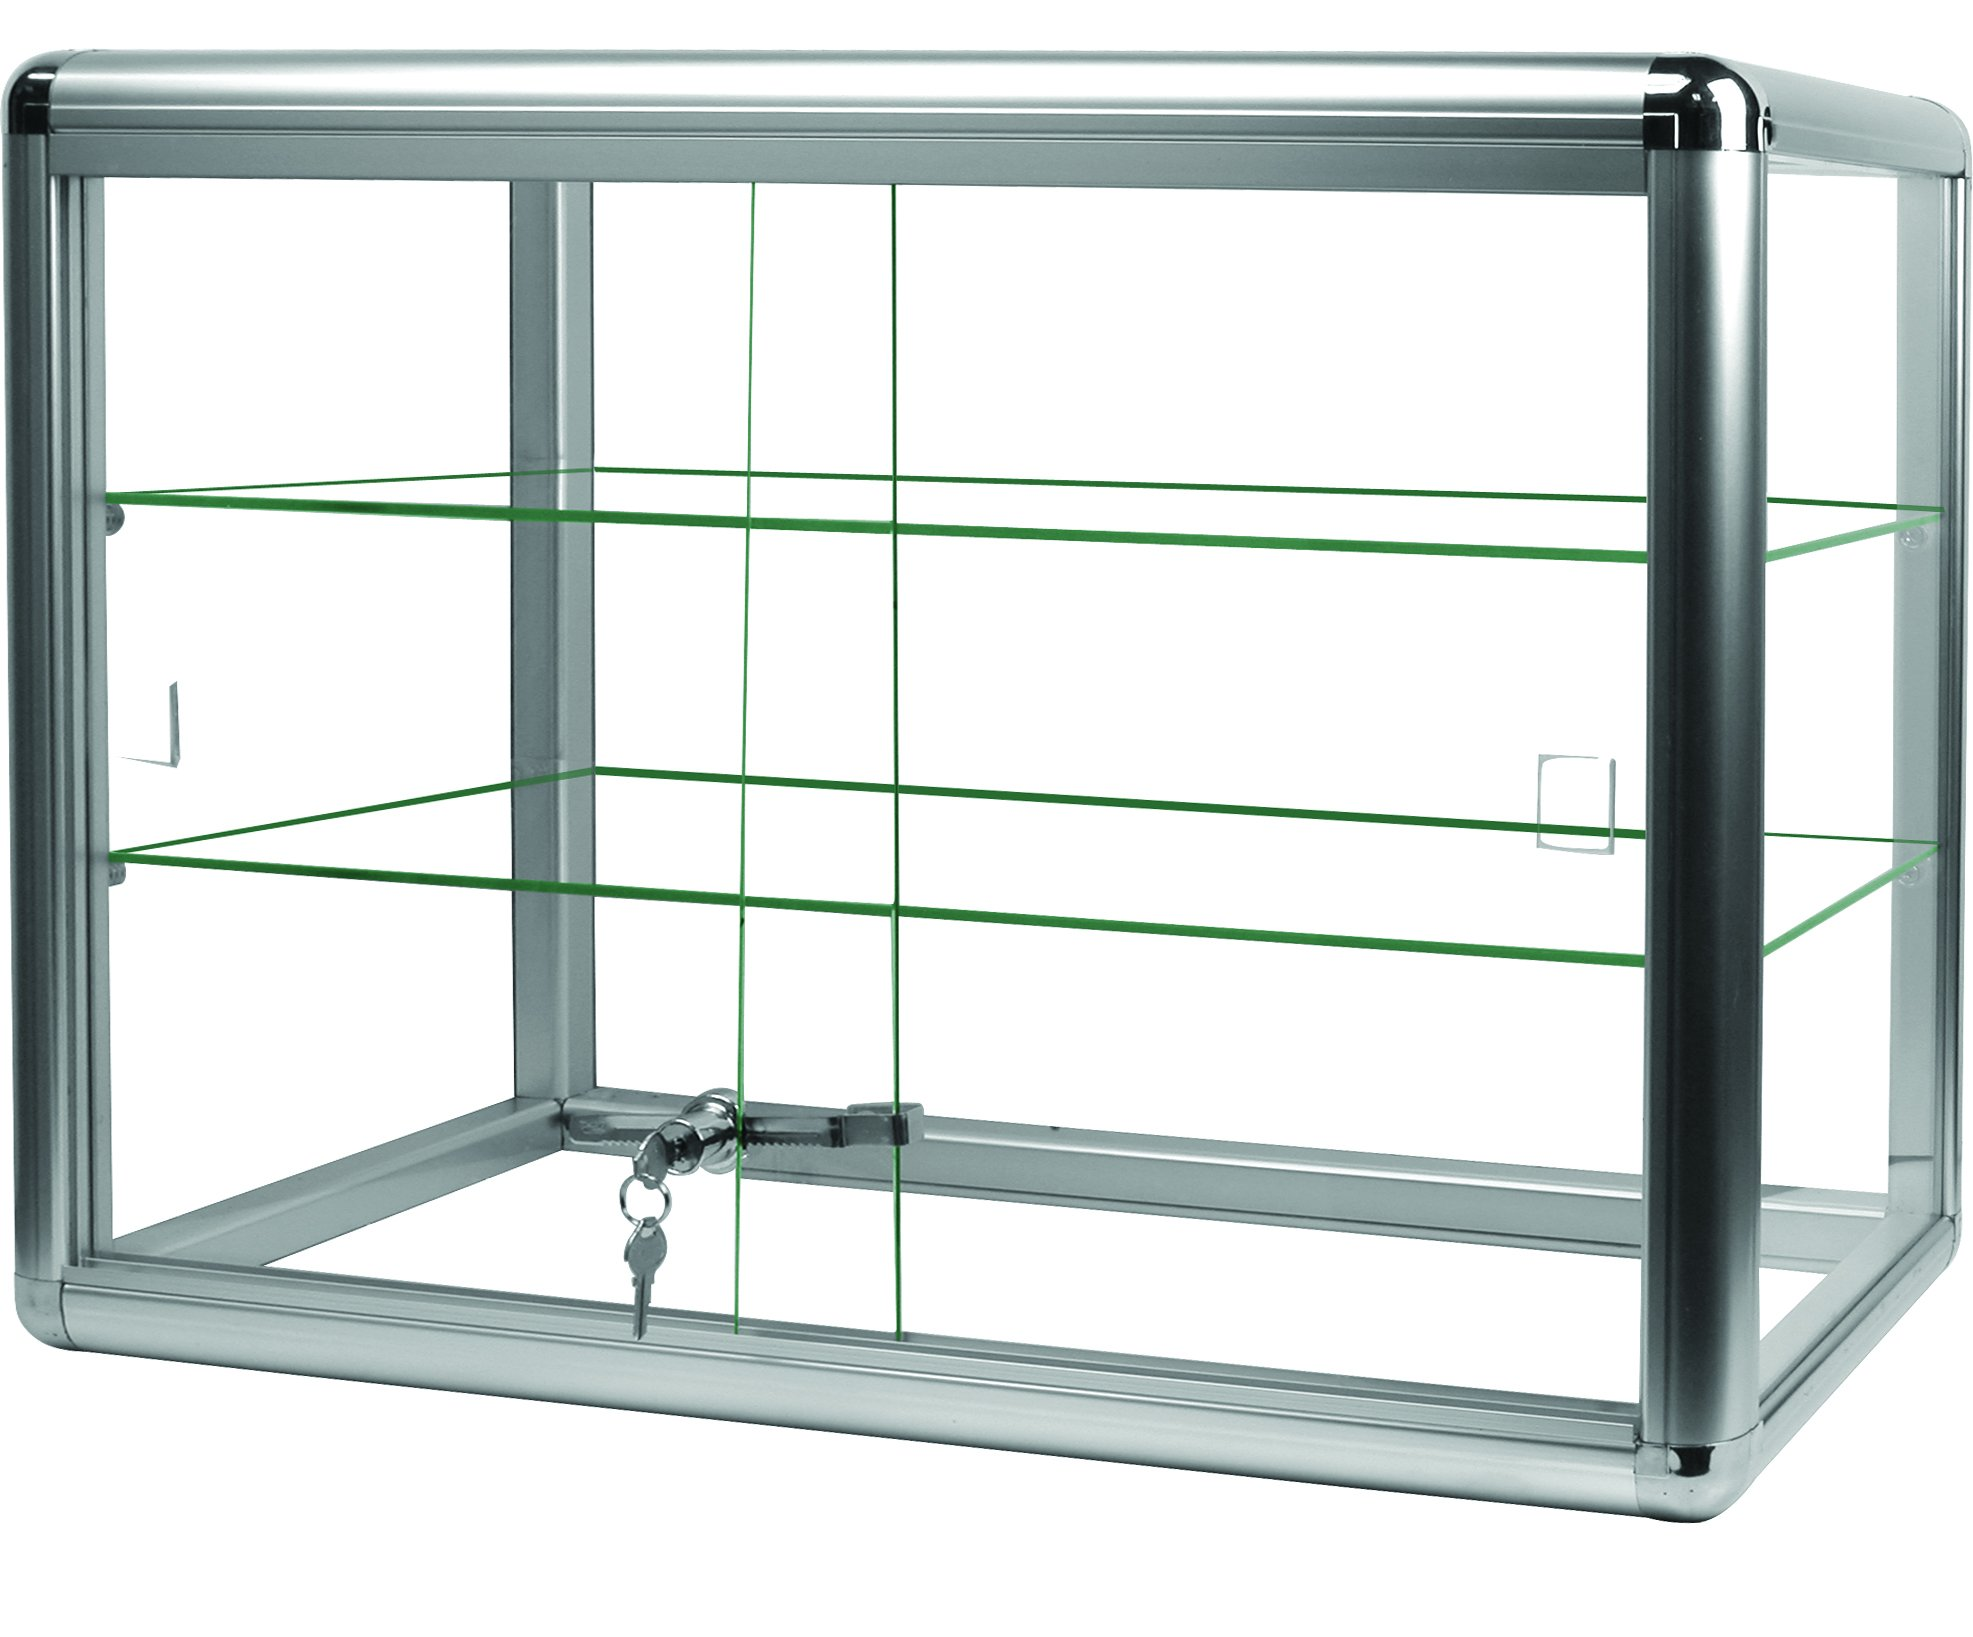 Elegant Silver Anodized Aluminum Display Table Top Tempered Glass Show Case. Sliding Tempered Glass Sliding Doors with Key Lock (24''wide x 12''deep x 18''H (2 Shelves), Silver Trim)